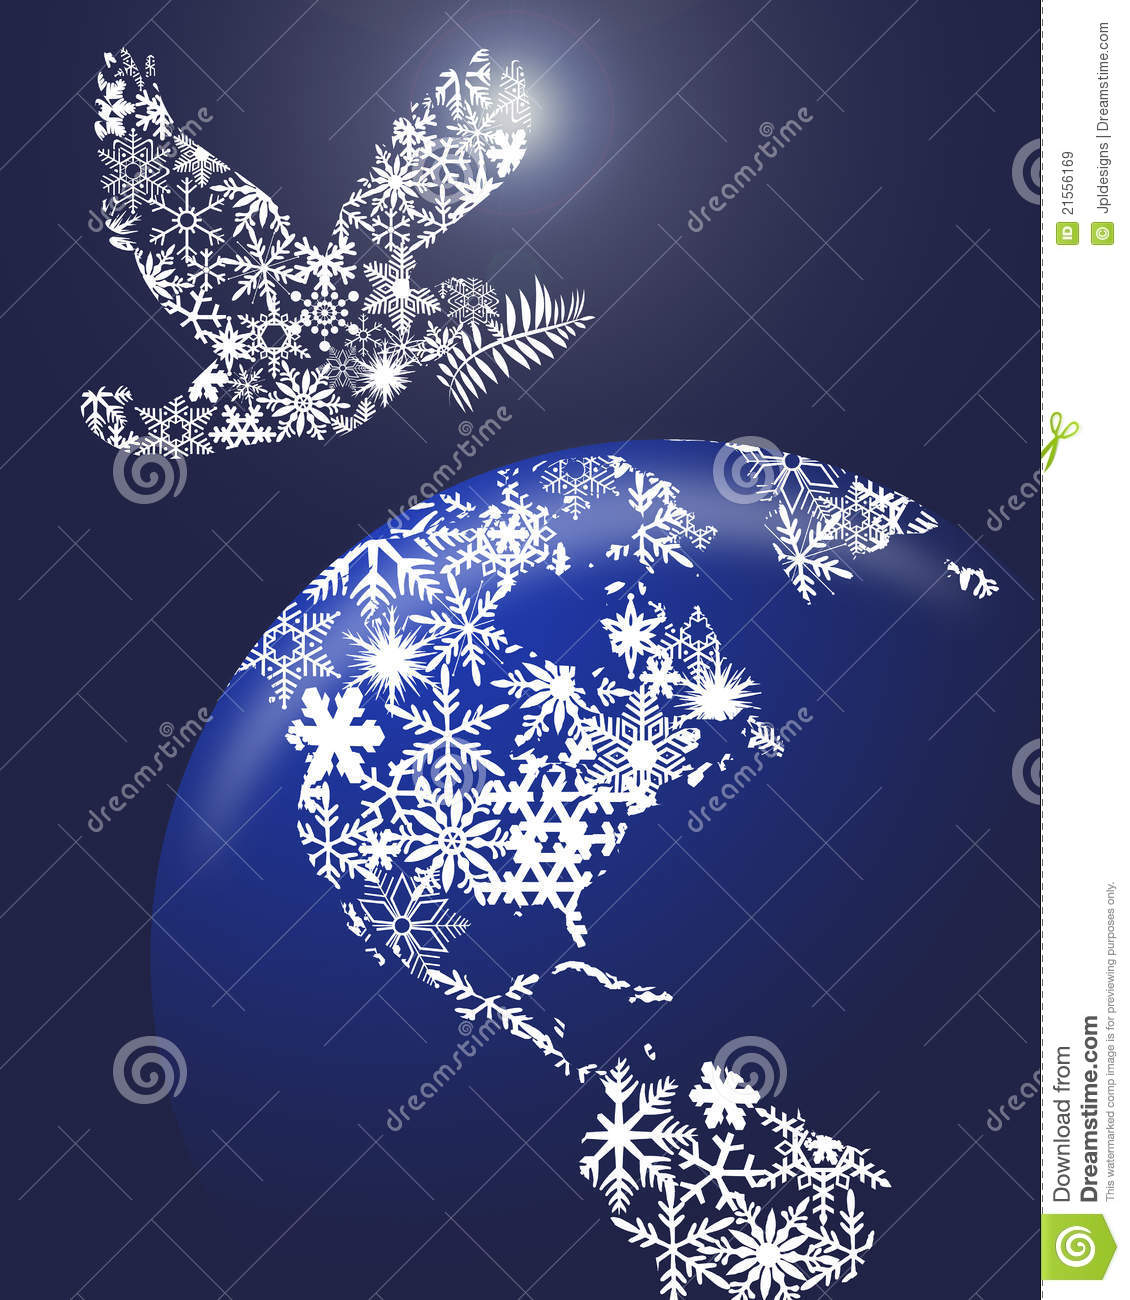 christmas peace dove on earth stock illustration illustration of